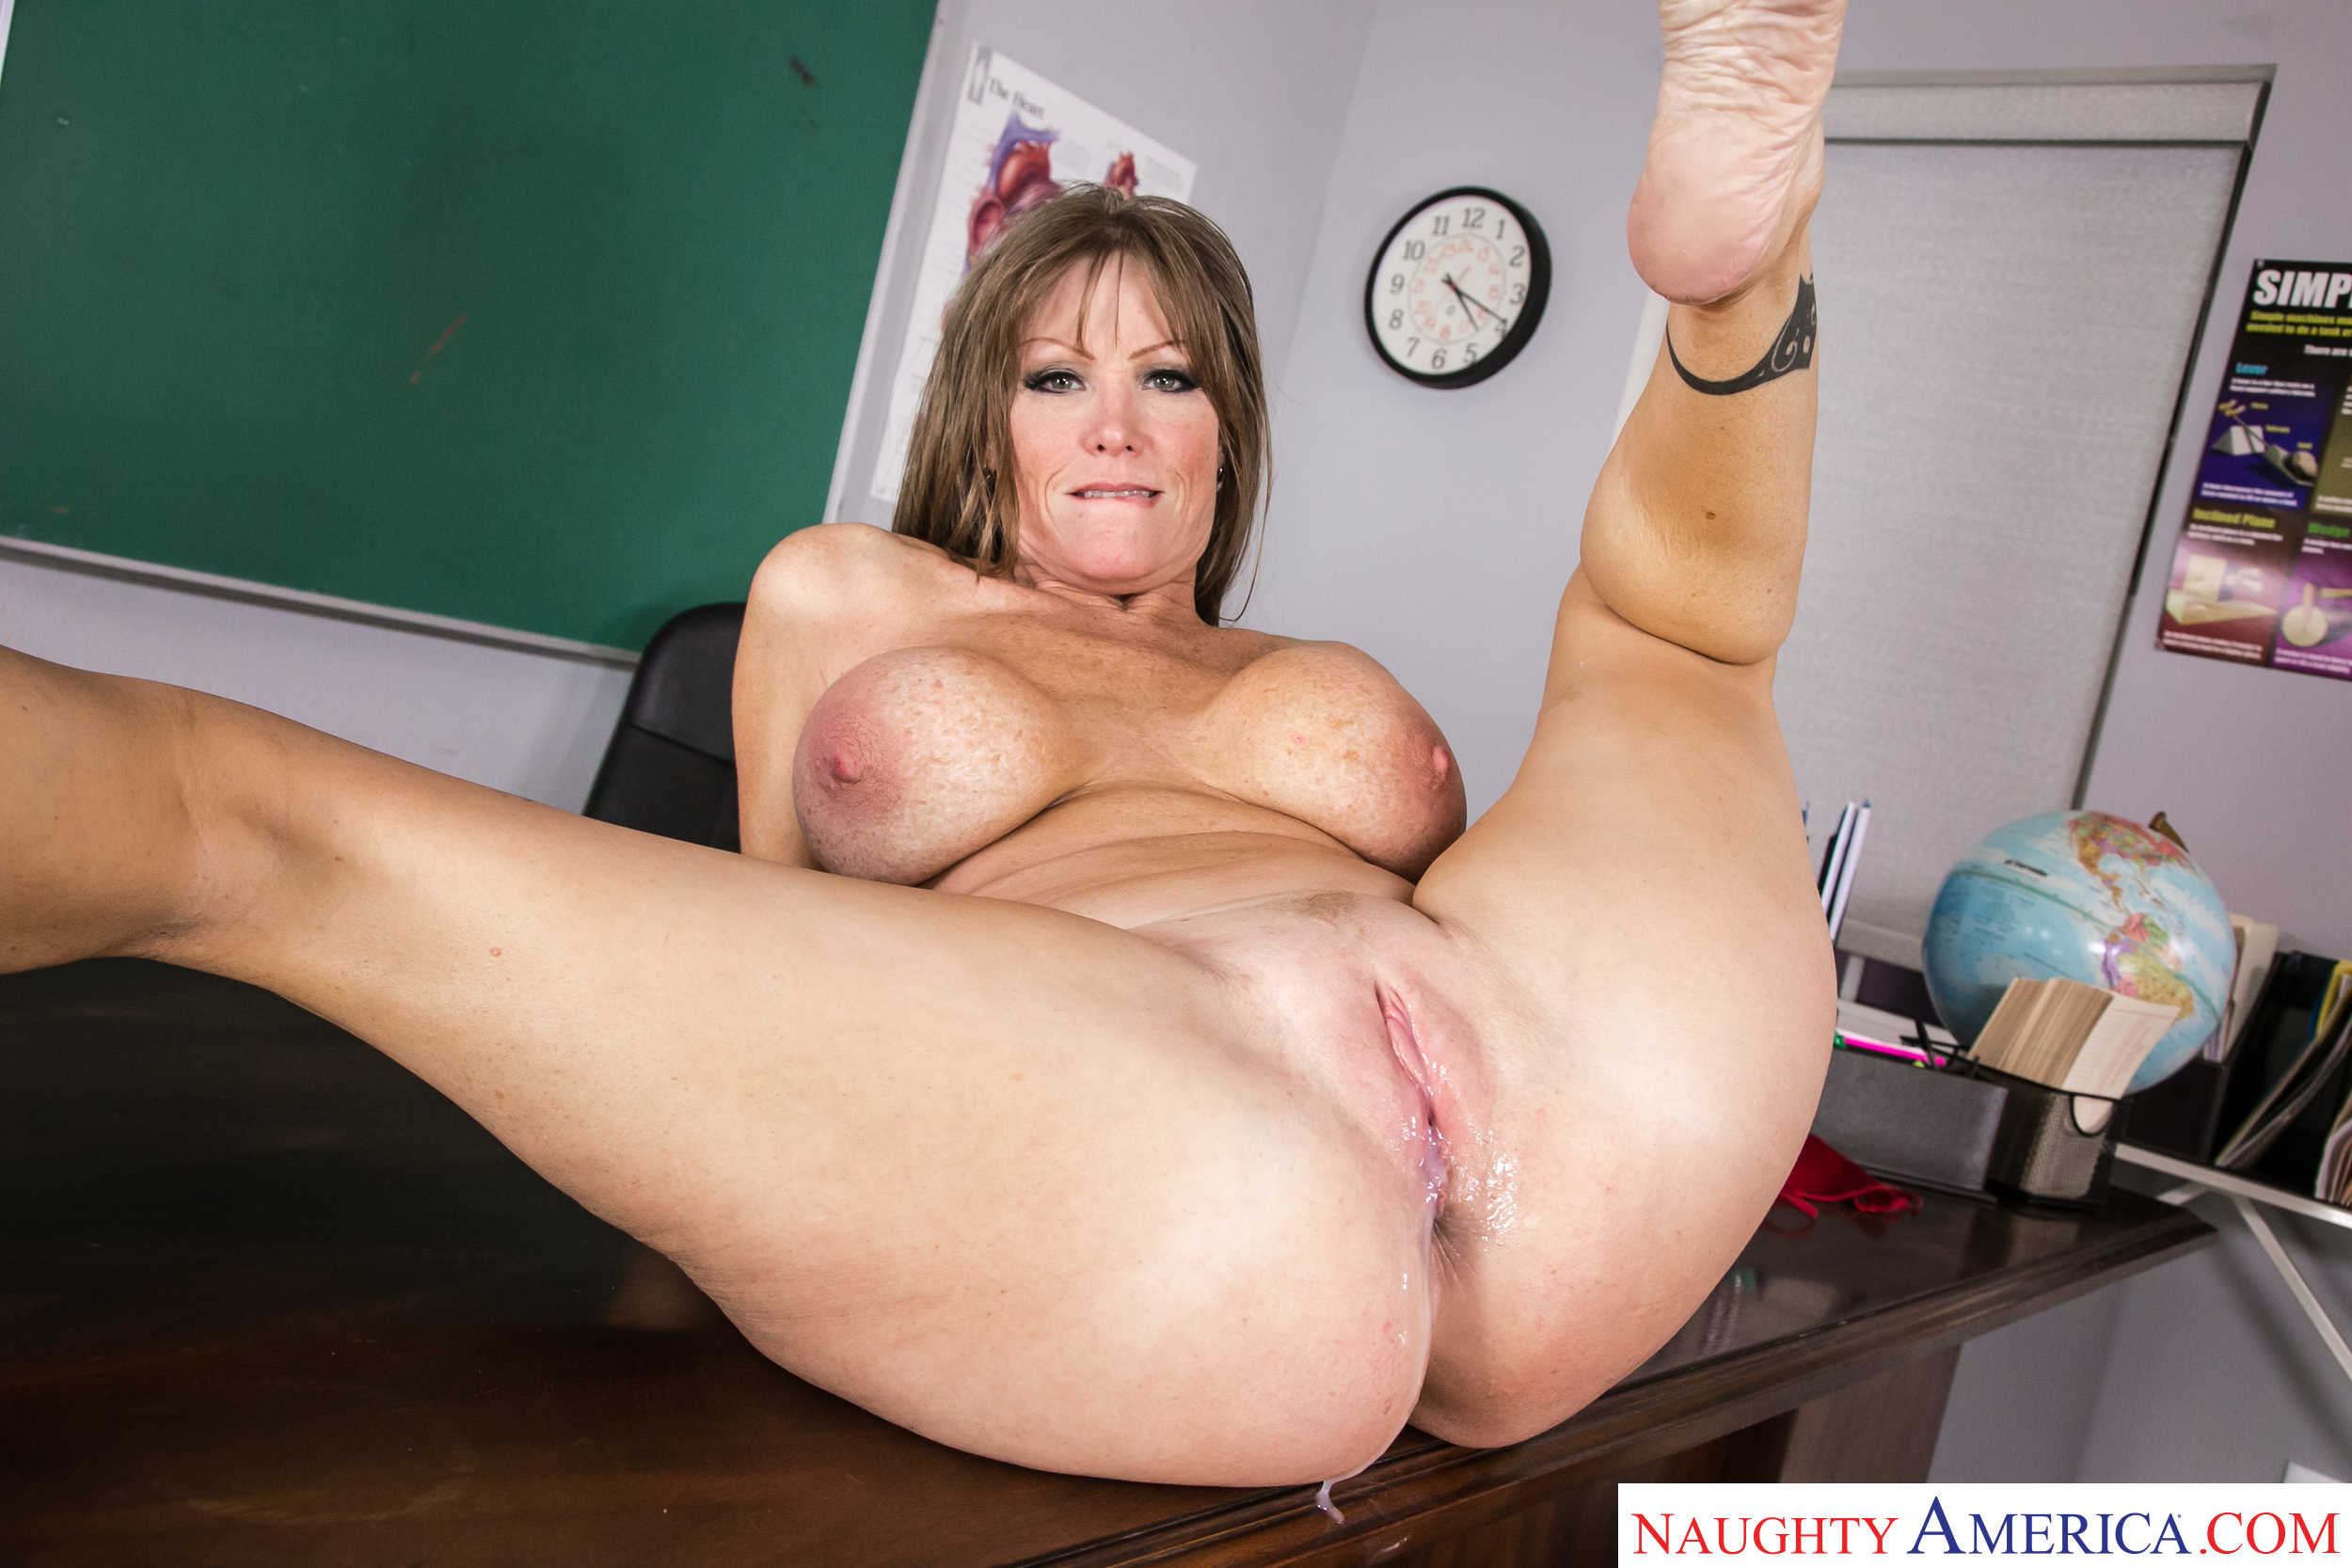 [MrsCreampie] Darla Crane (Hot Milf Darla Crane Gets A Creampie In Class / 12.29.2020)